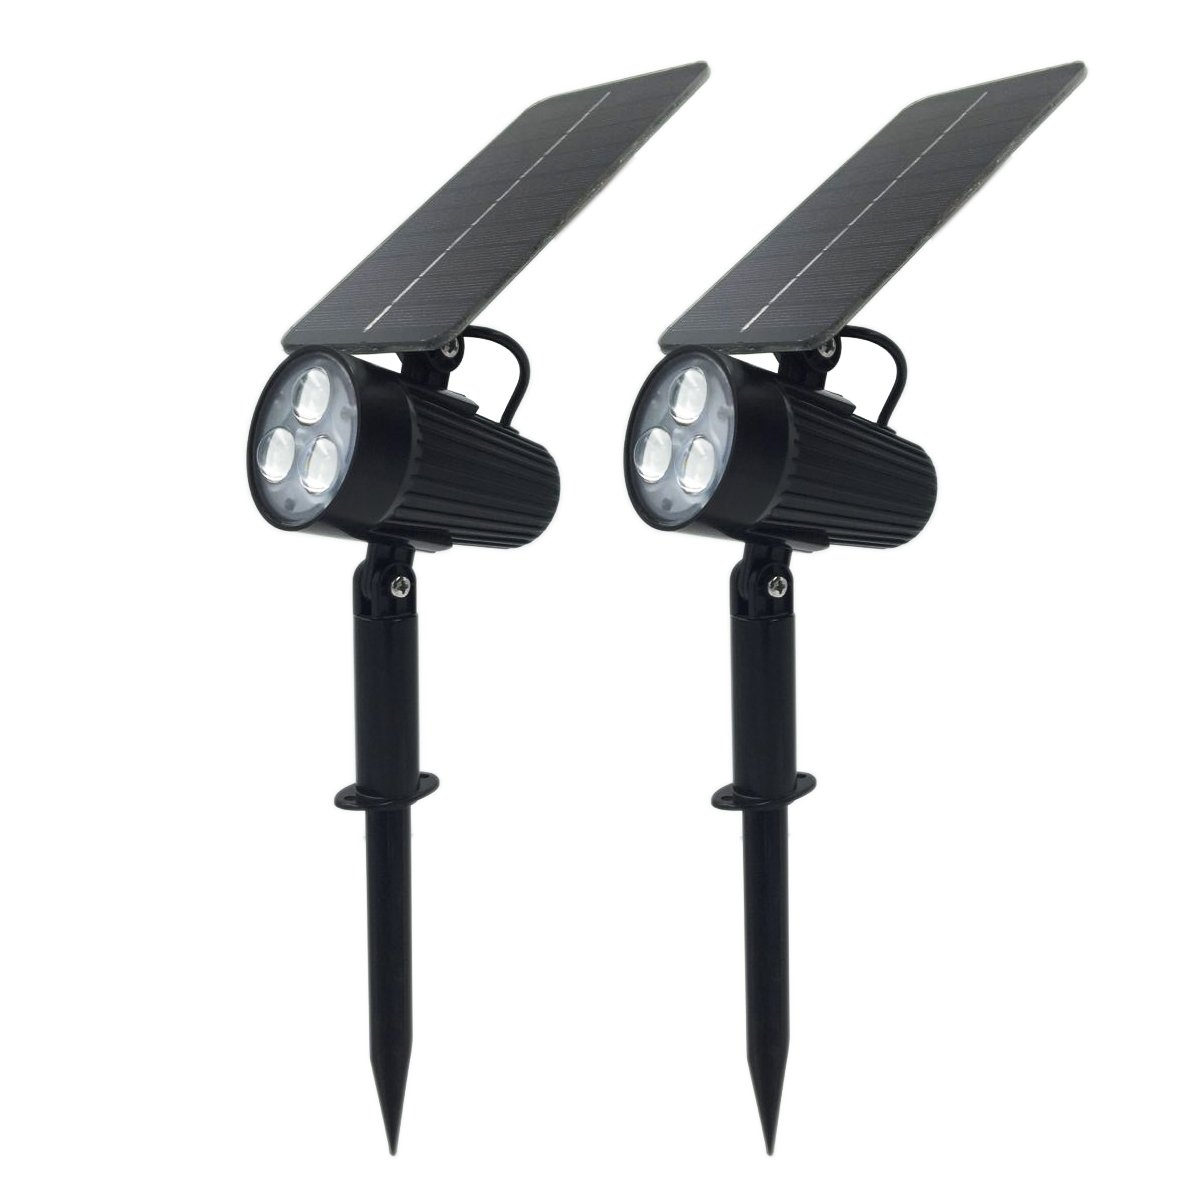 Mii-PWR Solar Spotlight, Mii 2-in-1 Waterproof Solar Outdoor Landscape Light 2 Power Modes Auto ON/OFF Night Lights for Patio Yard Garden Decoration Driveway Pathway Pool (Pack of 2)